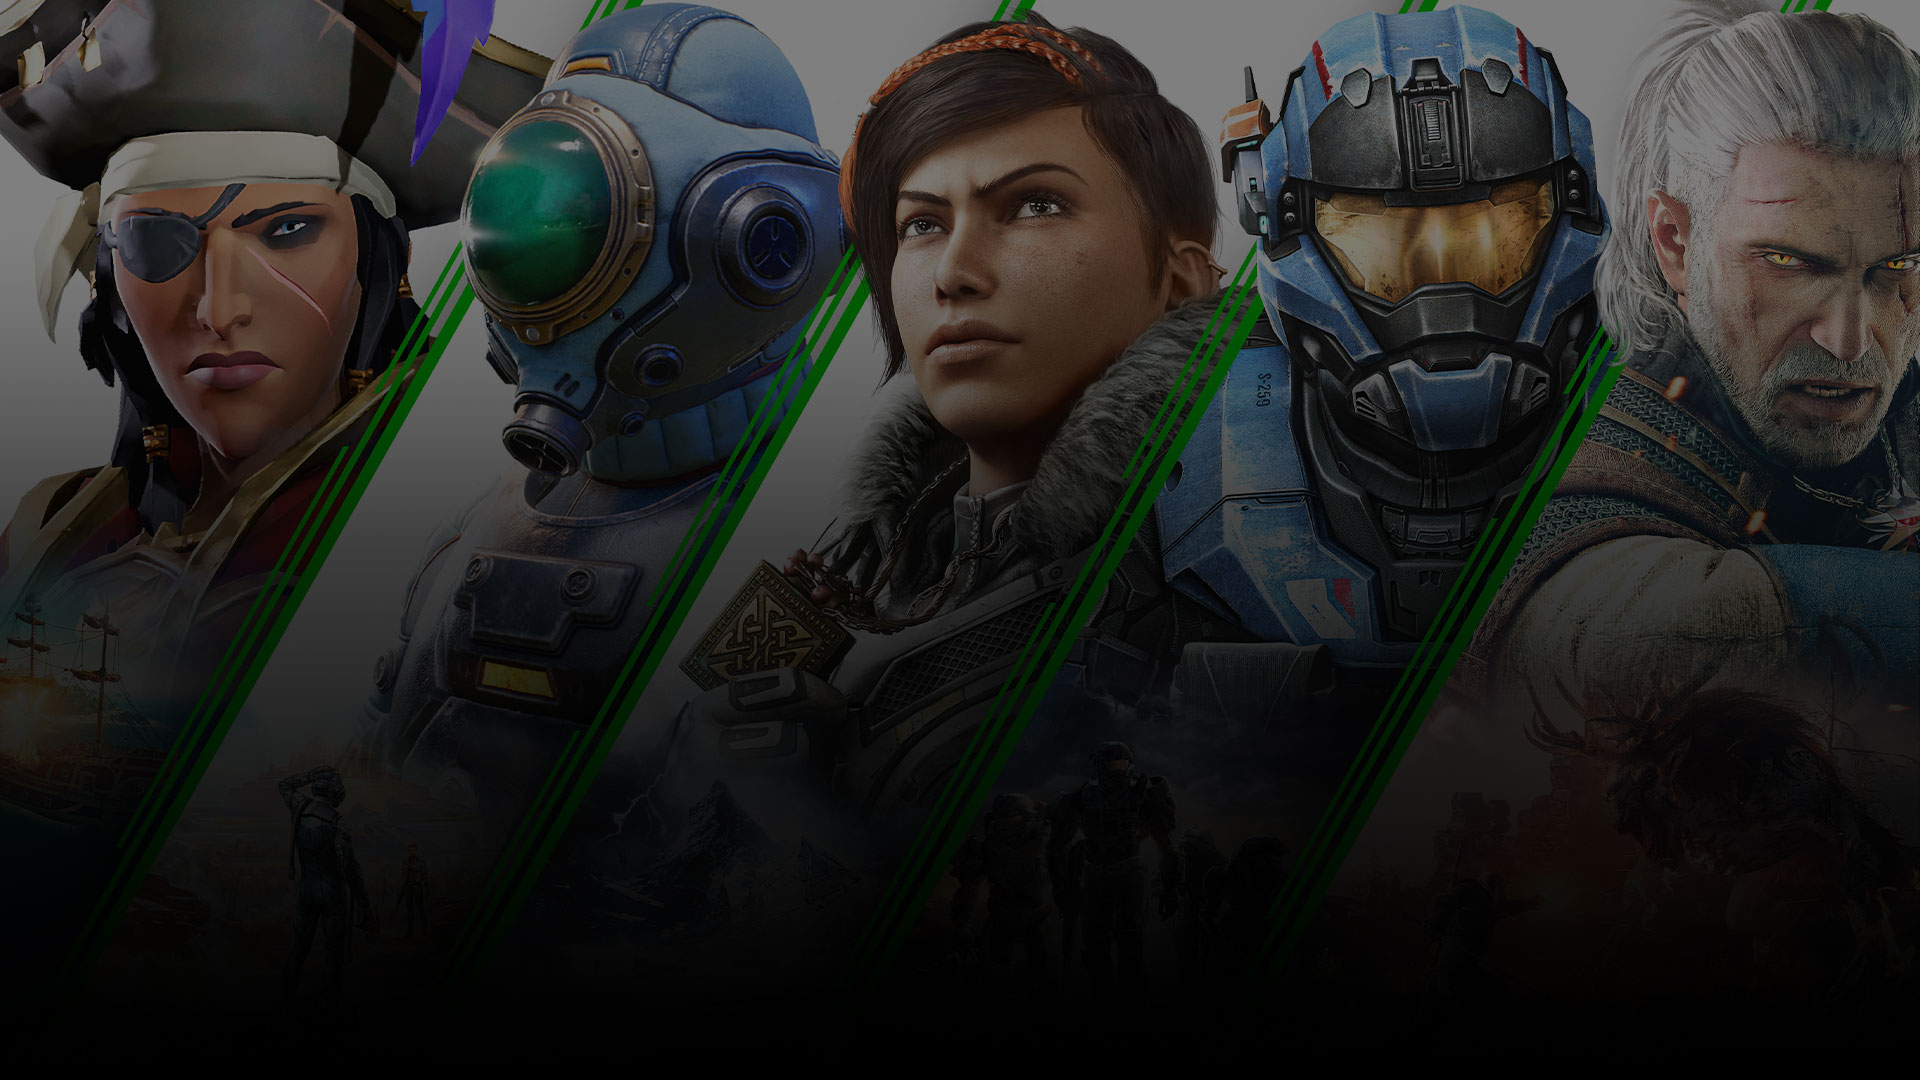 A collage of Xbox Game Pass Games including Halo, Gears 5, Sea of thieves and more.